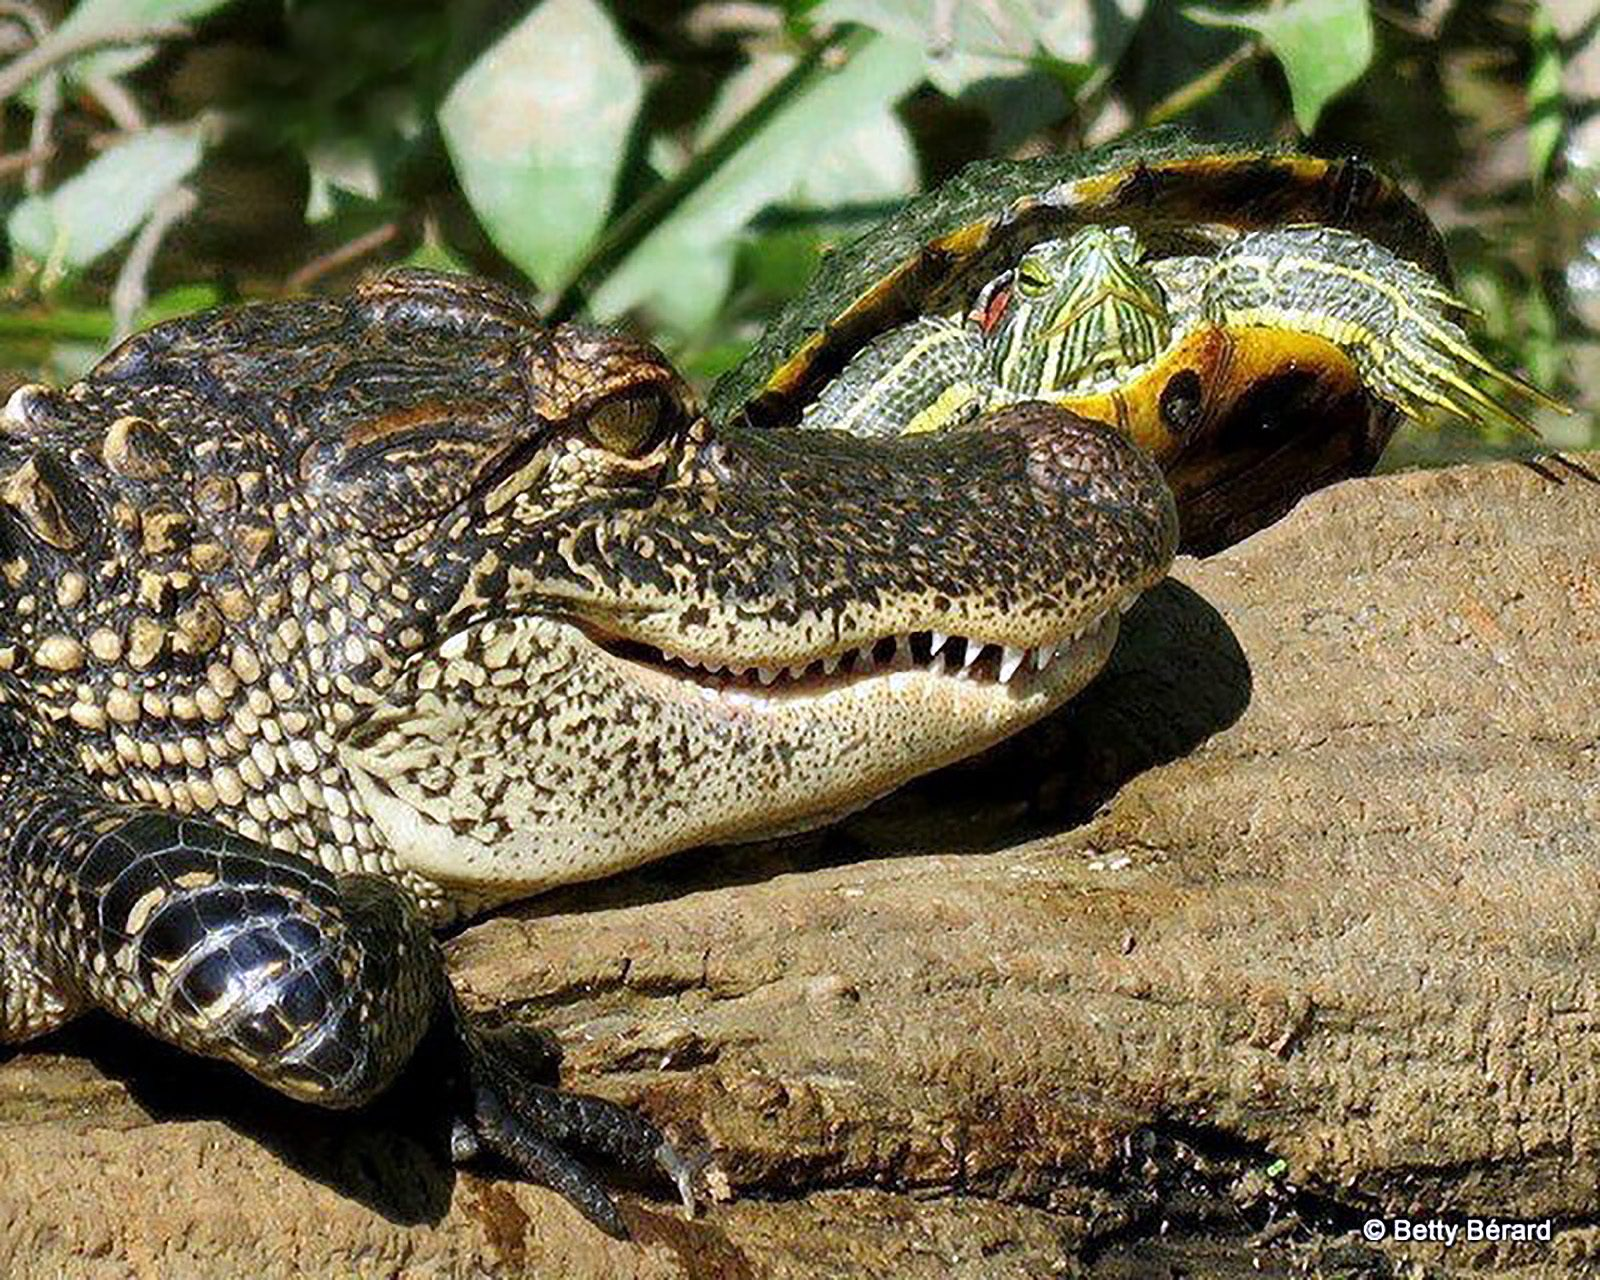 Young Alligator & Turtle Sharing a Log